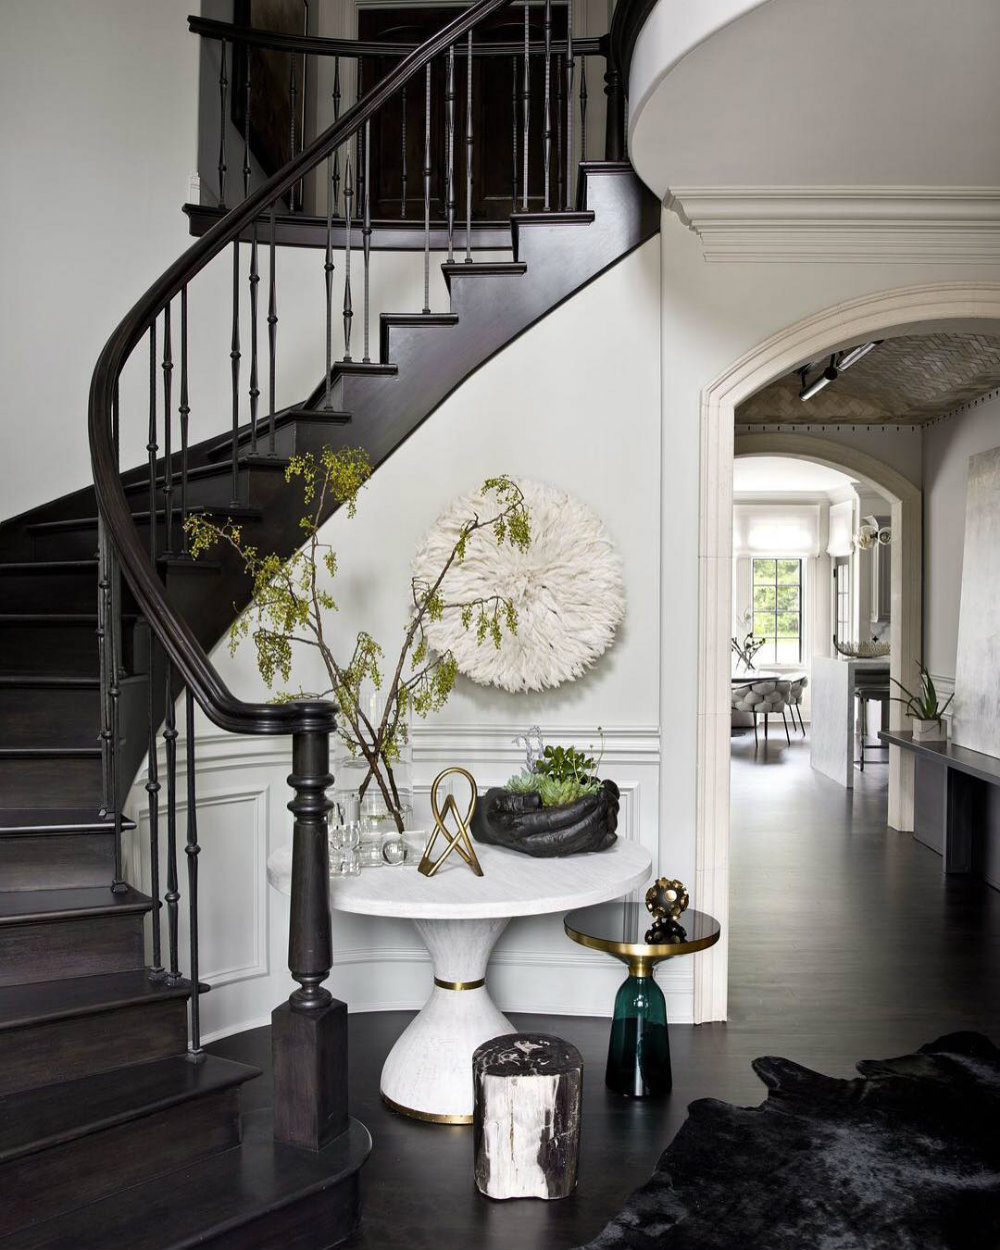 House Tour - A Glamorous and Edgy Chicago Home 02 chicago home House Tour - A Glamorous and Edgy Chicago Home House Tour A Glamorous and Edgy Chicago Home 02